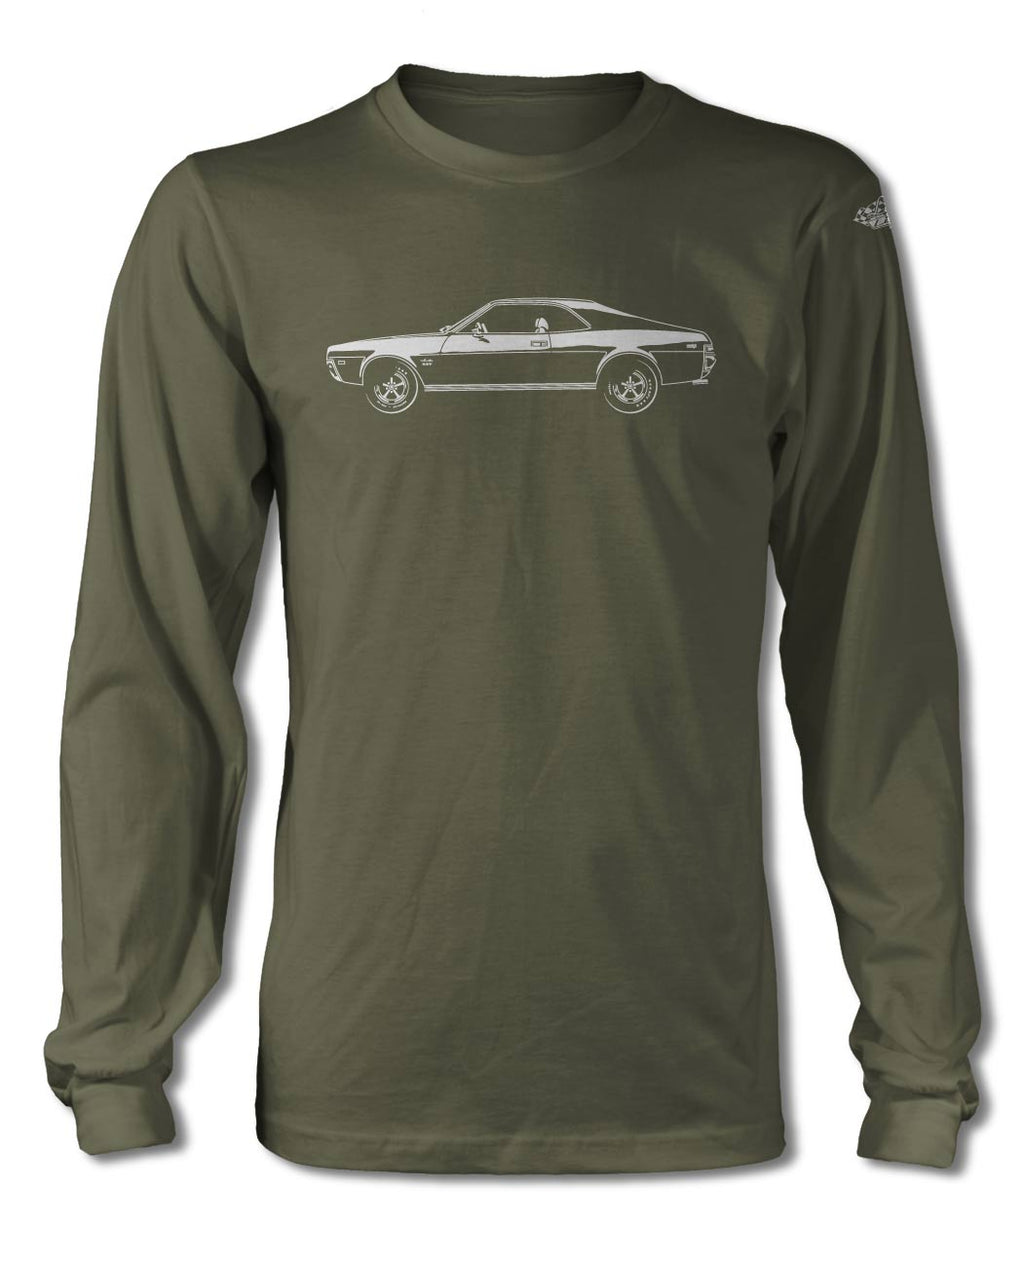 1968 AMC Javelin Coupe T-Shirt - Long Sleeves - Side View